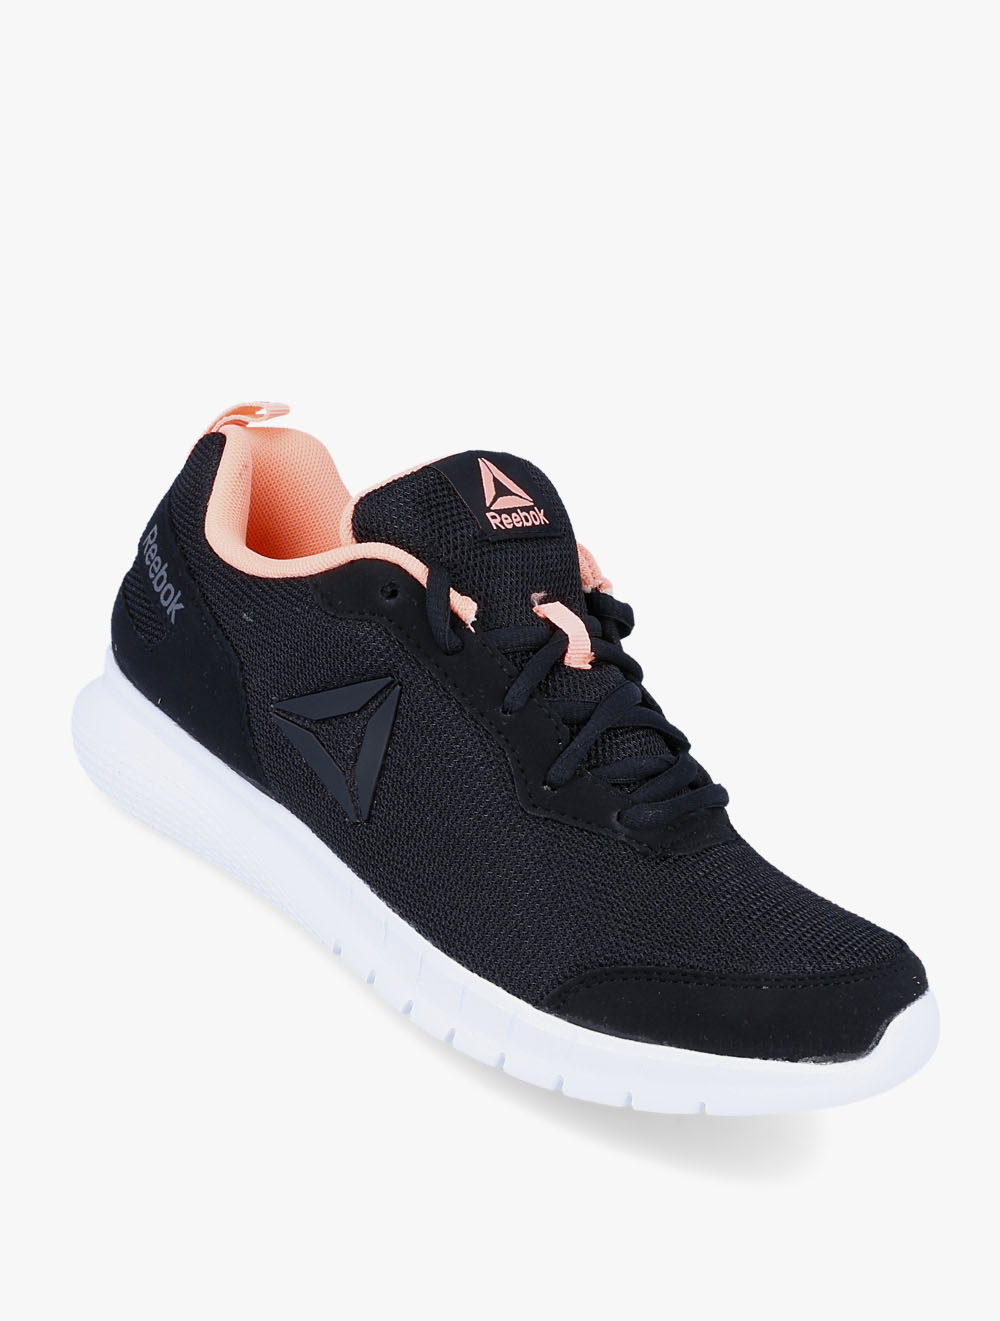 Planet Shoes From Reebok Women's Shop Sports On roCxBedW